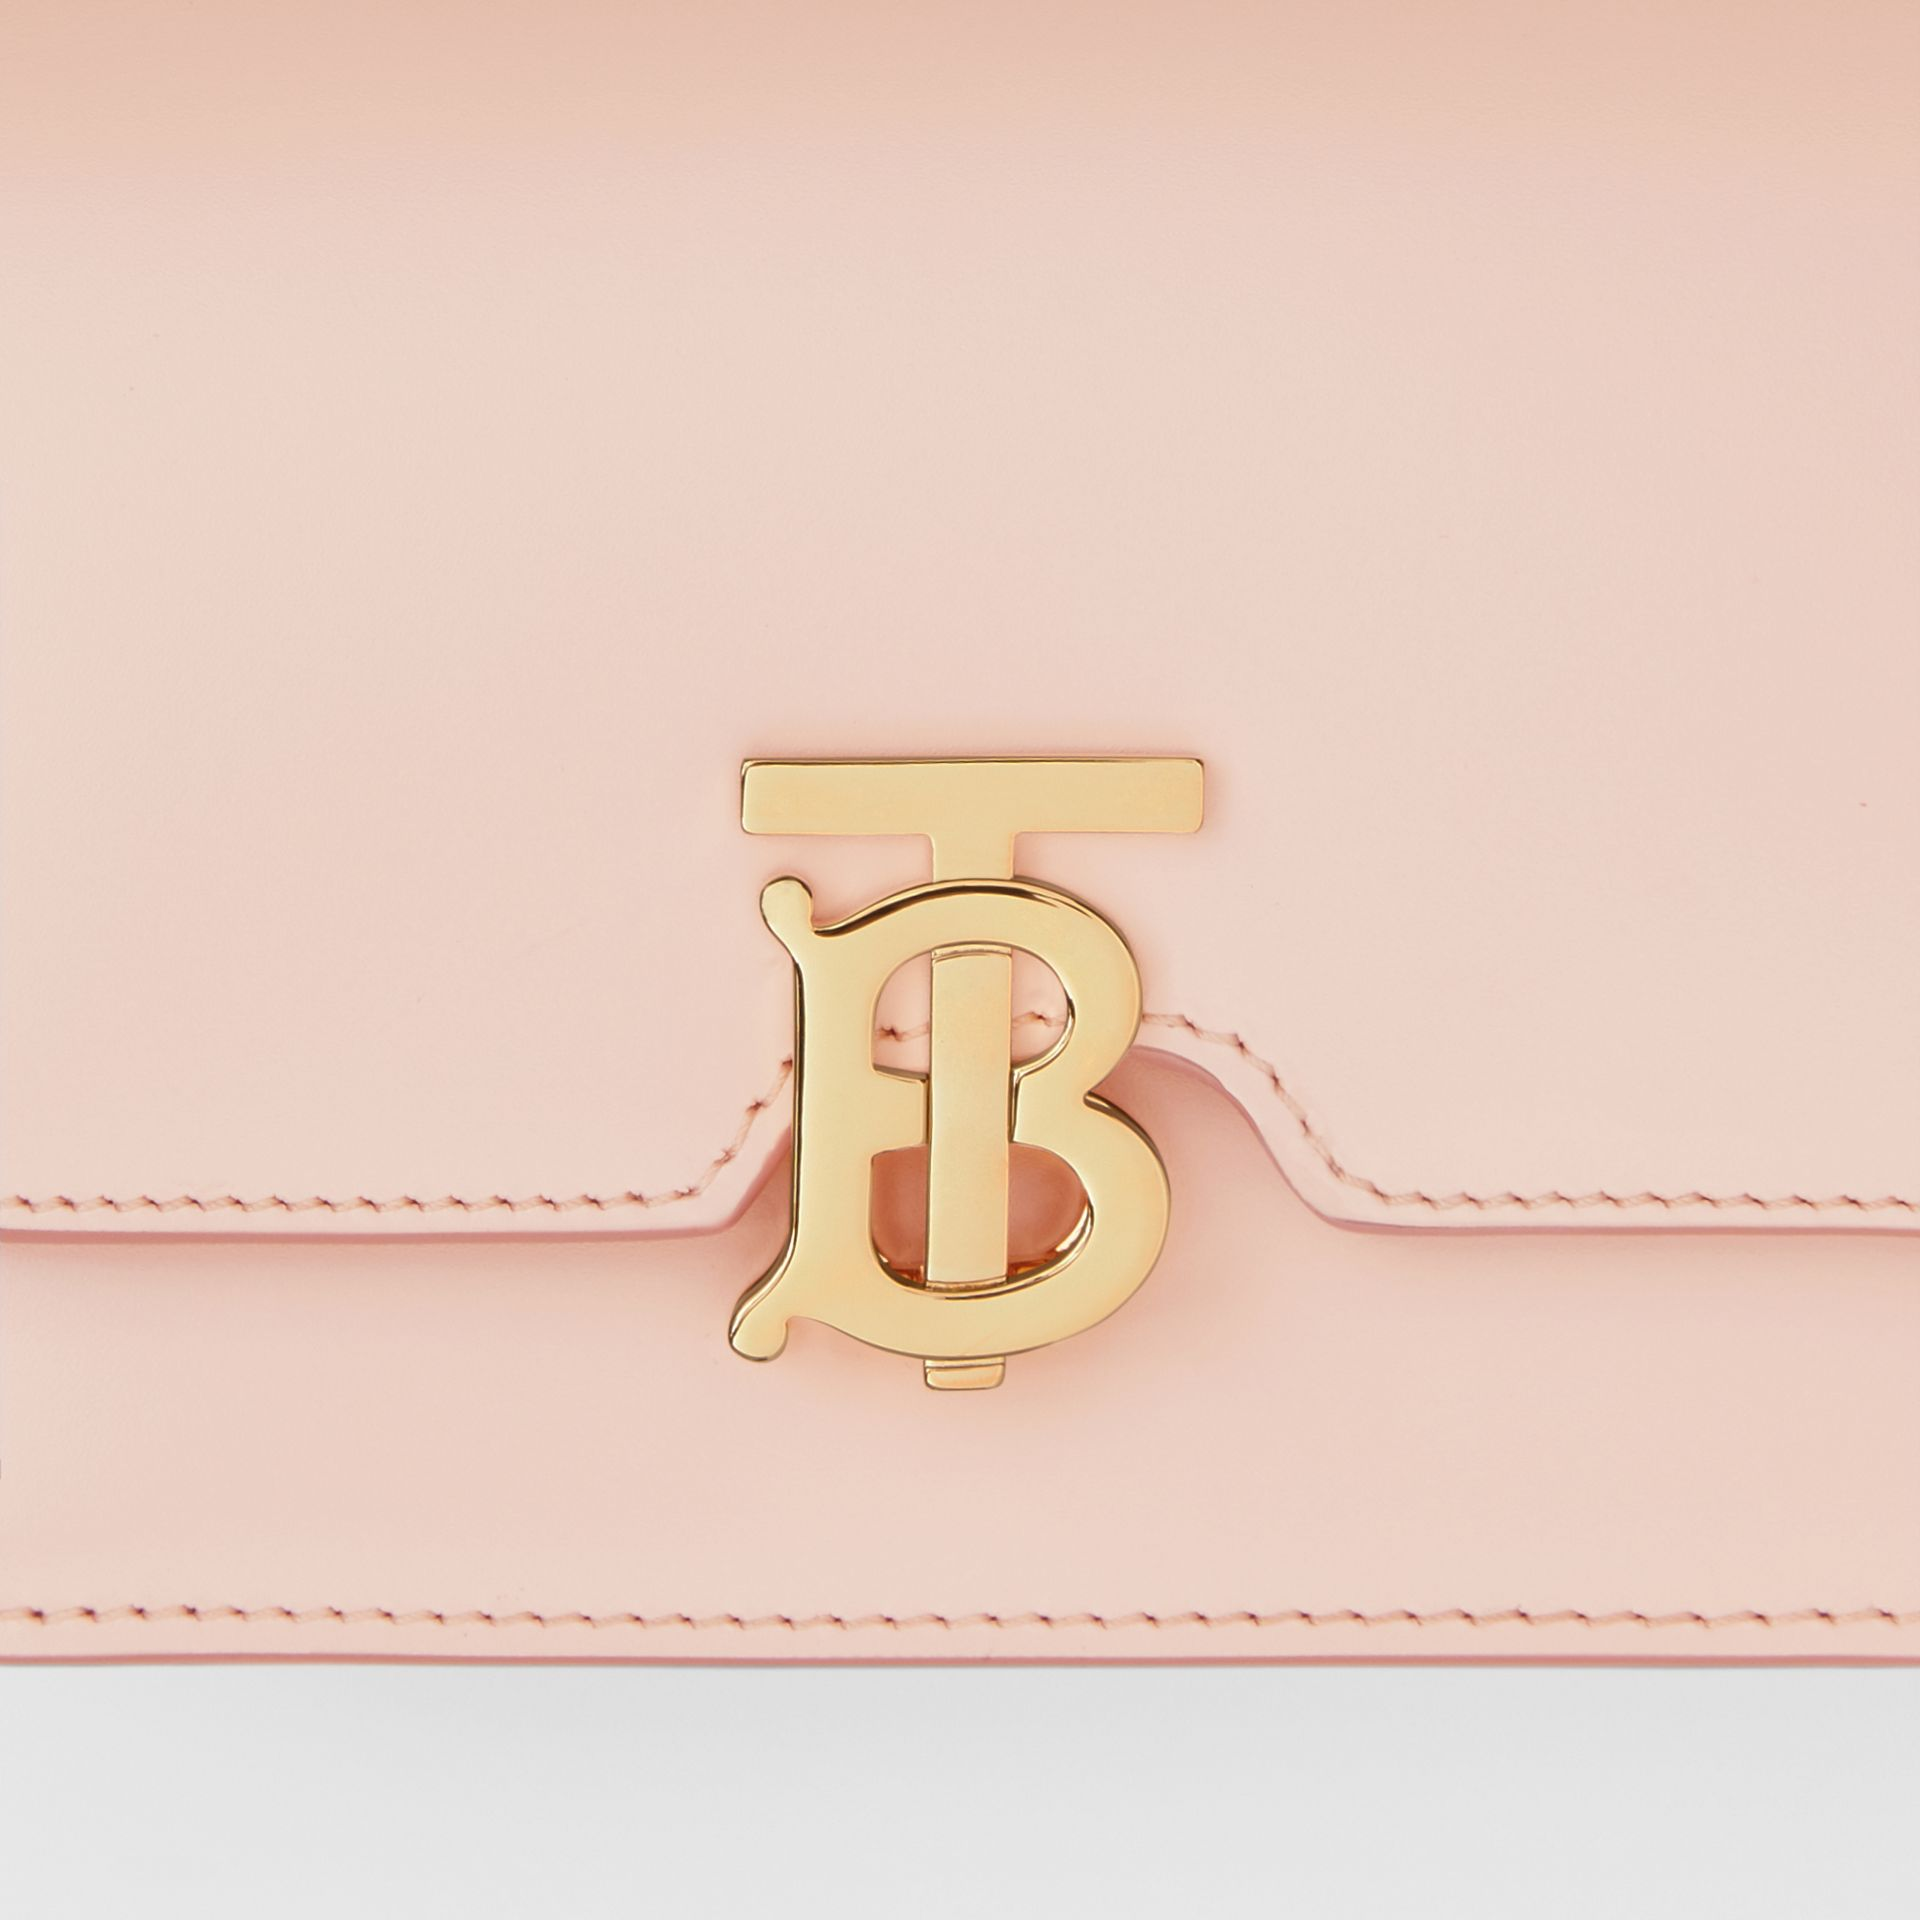 Mini Leather TB Bag in Rose Beige - Women | Burberry - gallery image 1